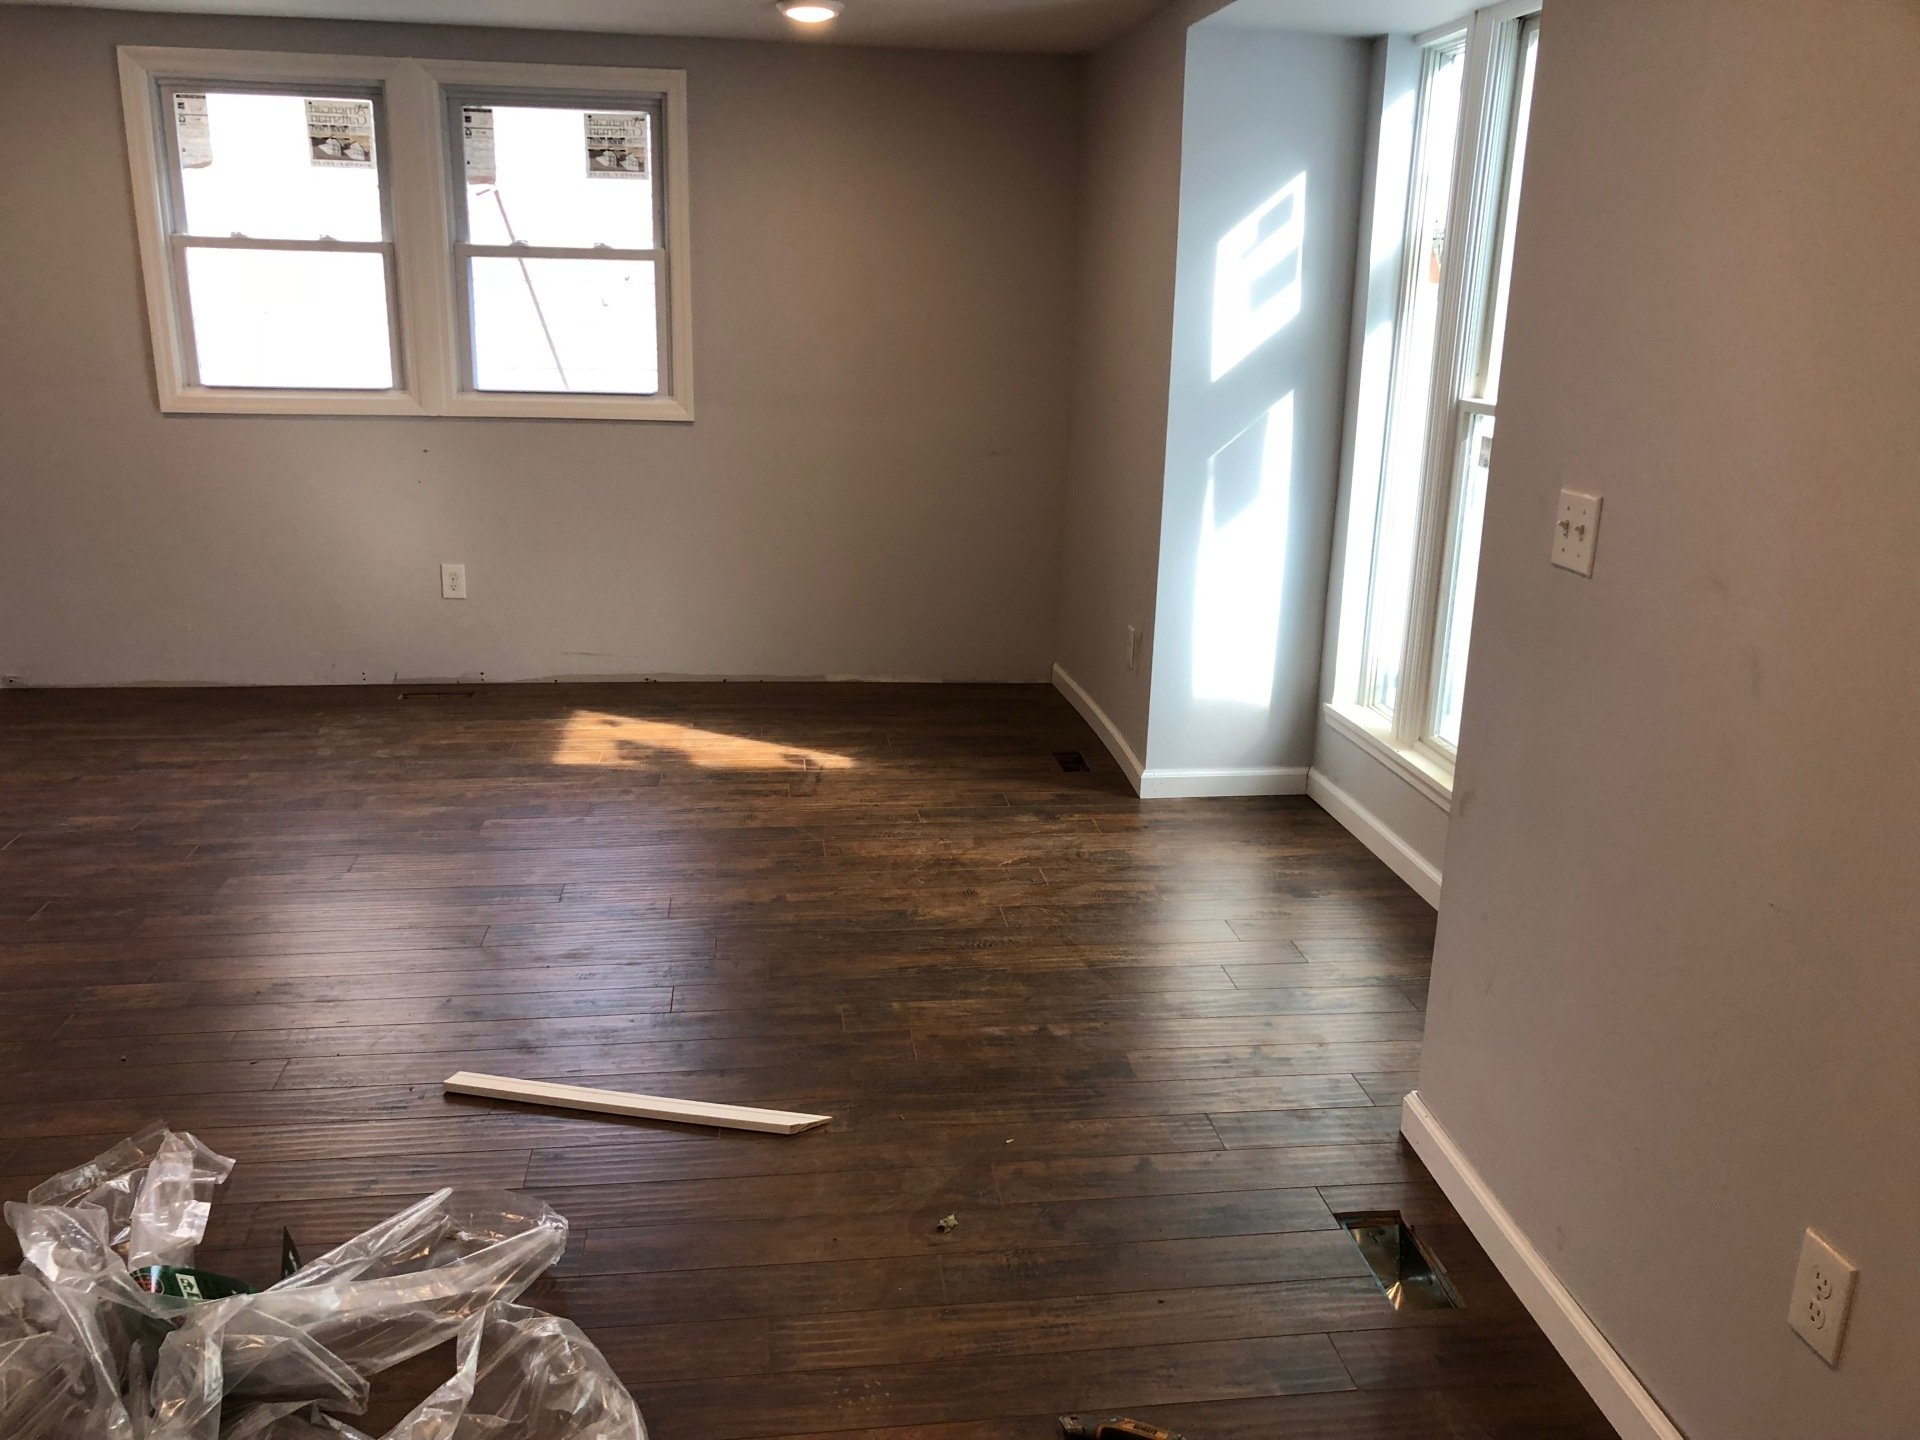 Beutifull hardwood floors